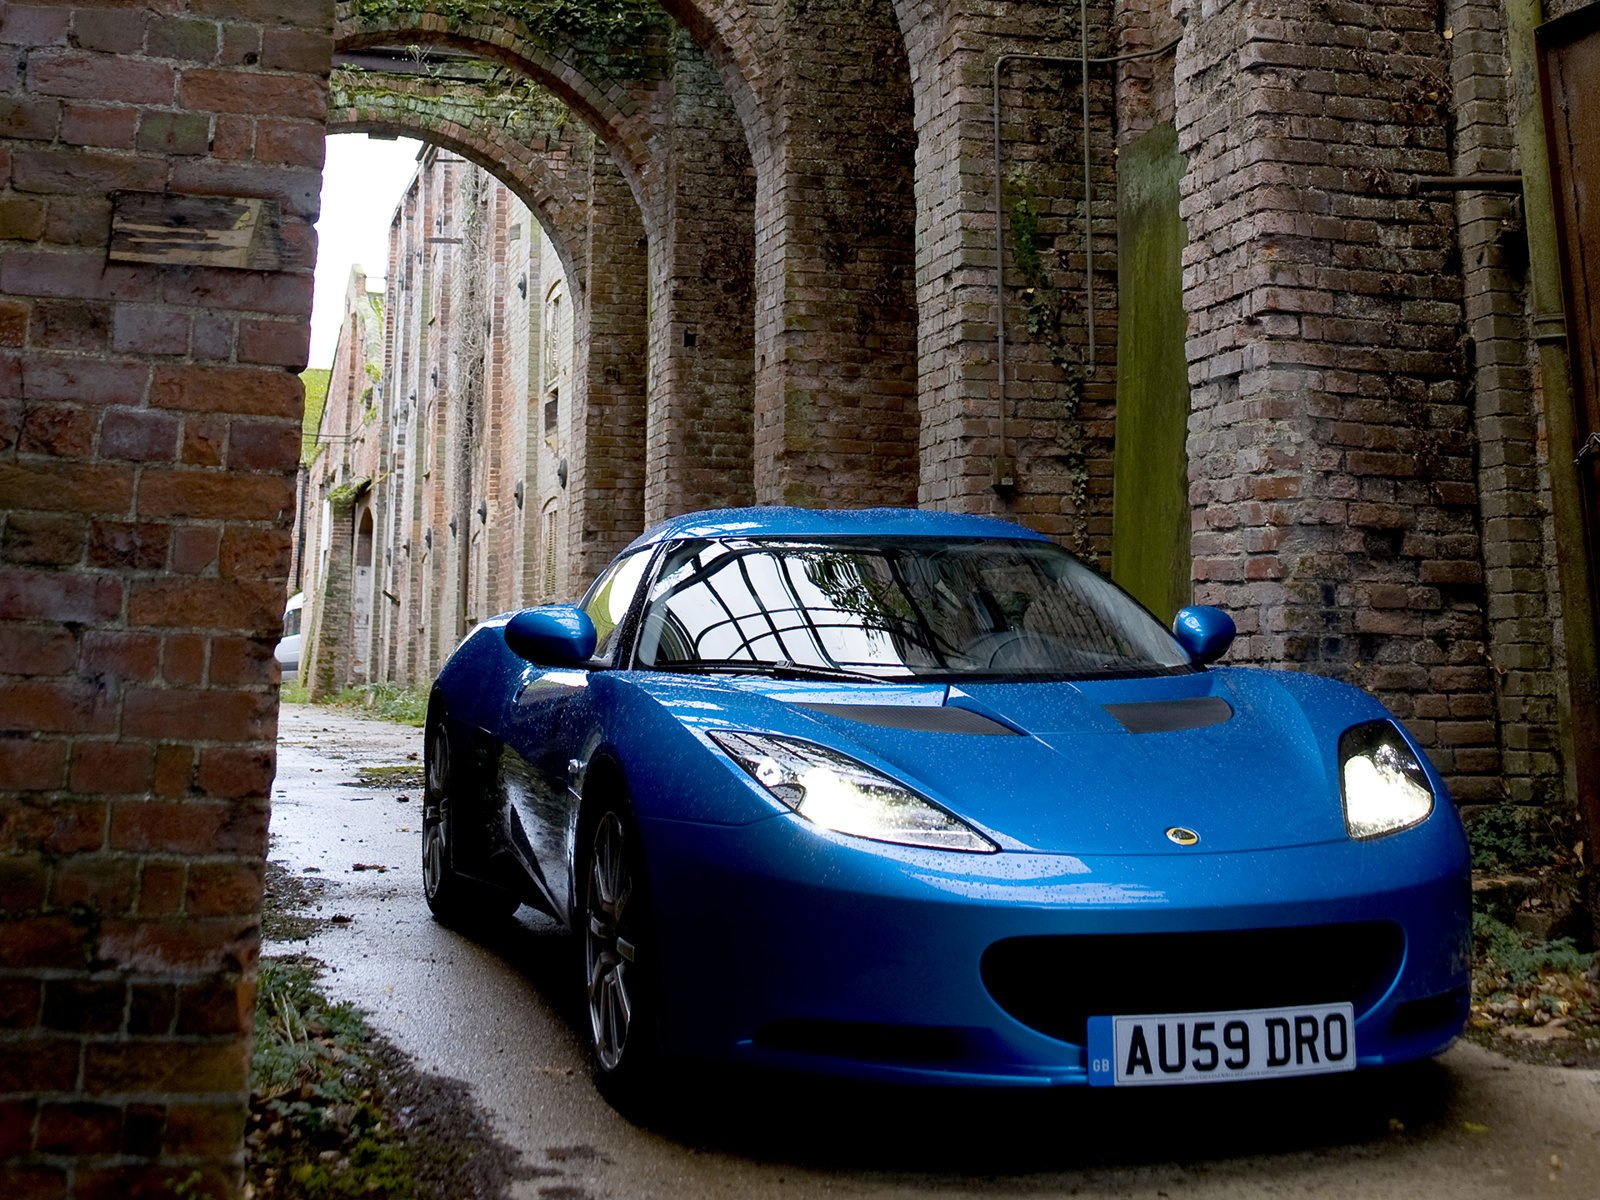 Latest 2010 Lotus Evora Lotus Wallpapers Car Review Free Download